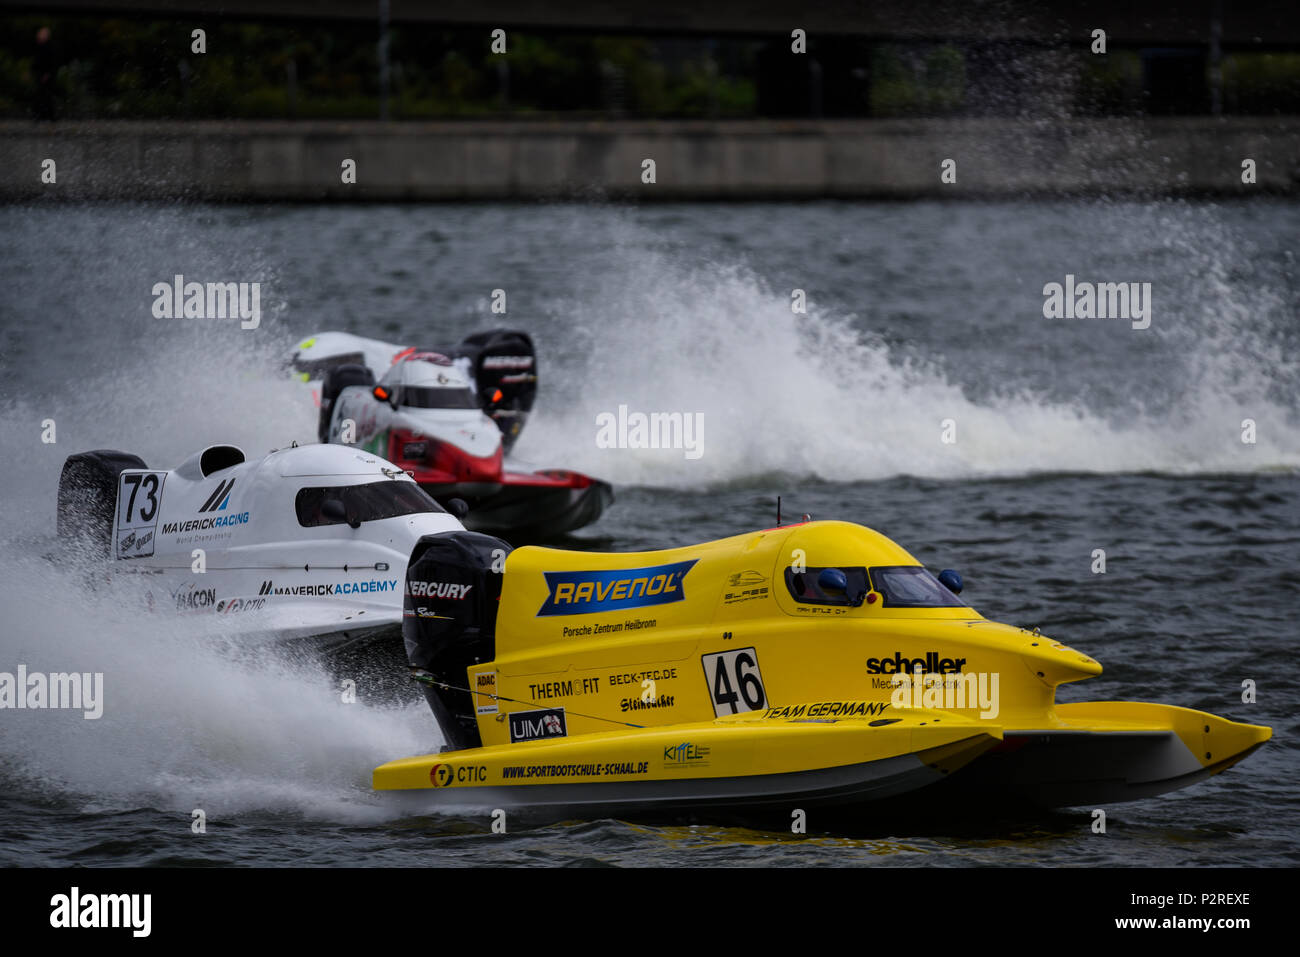 Max Stilz driving for Blaze Performance racing in the F1H2O F4-S Powerboat Grand Prix of London at Royal Victoria Dock, Docklands, Newham, London, UK - Stock Image